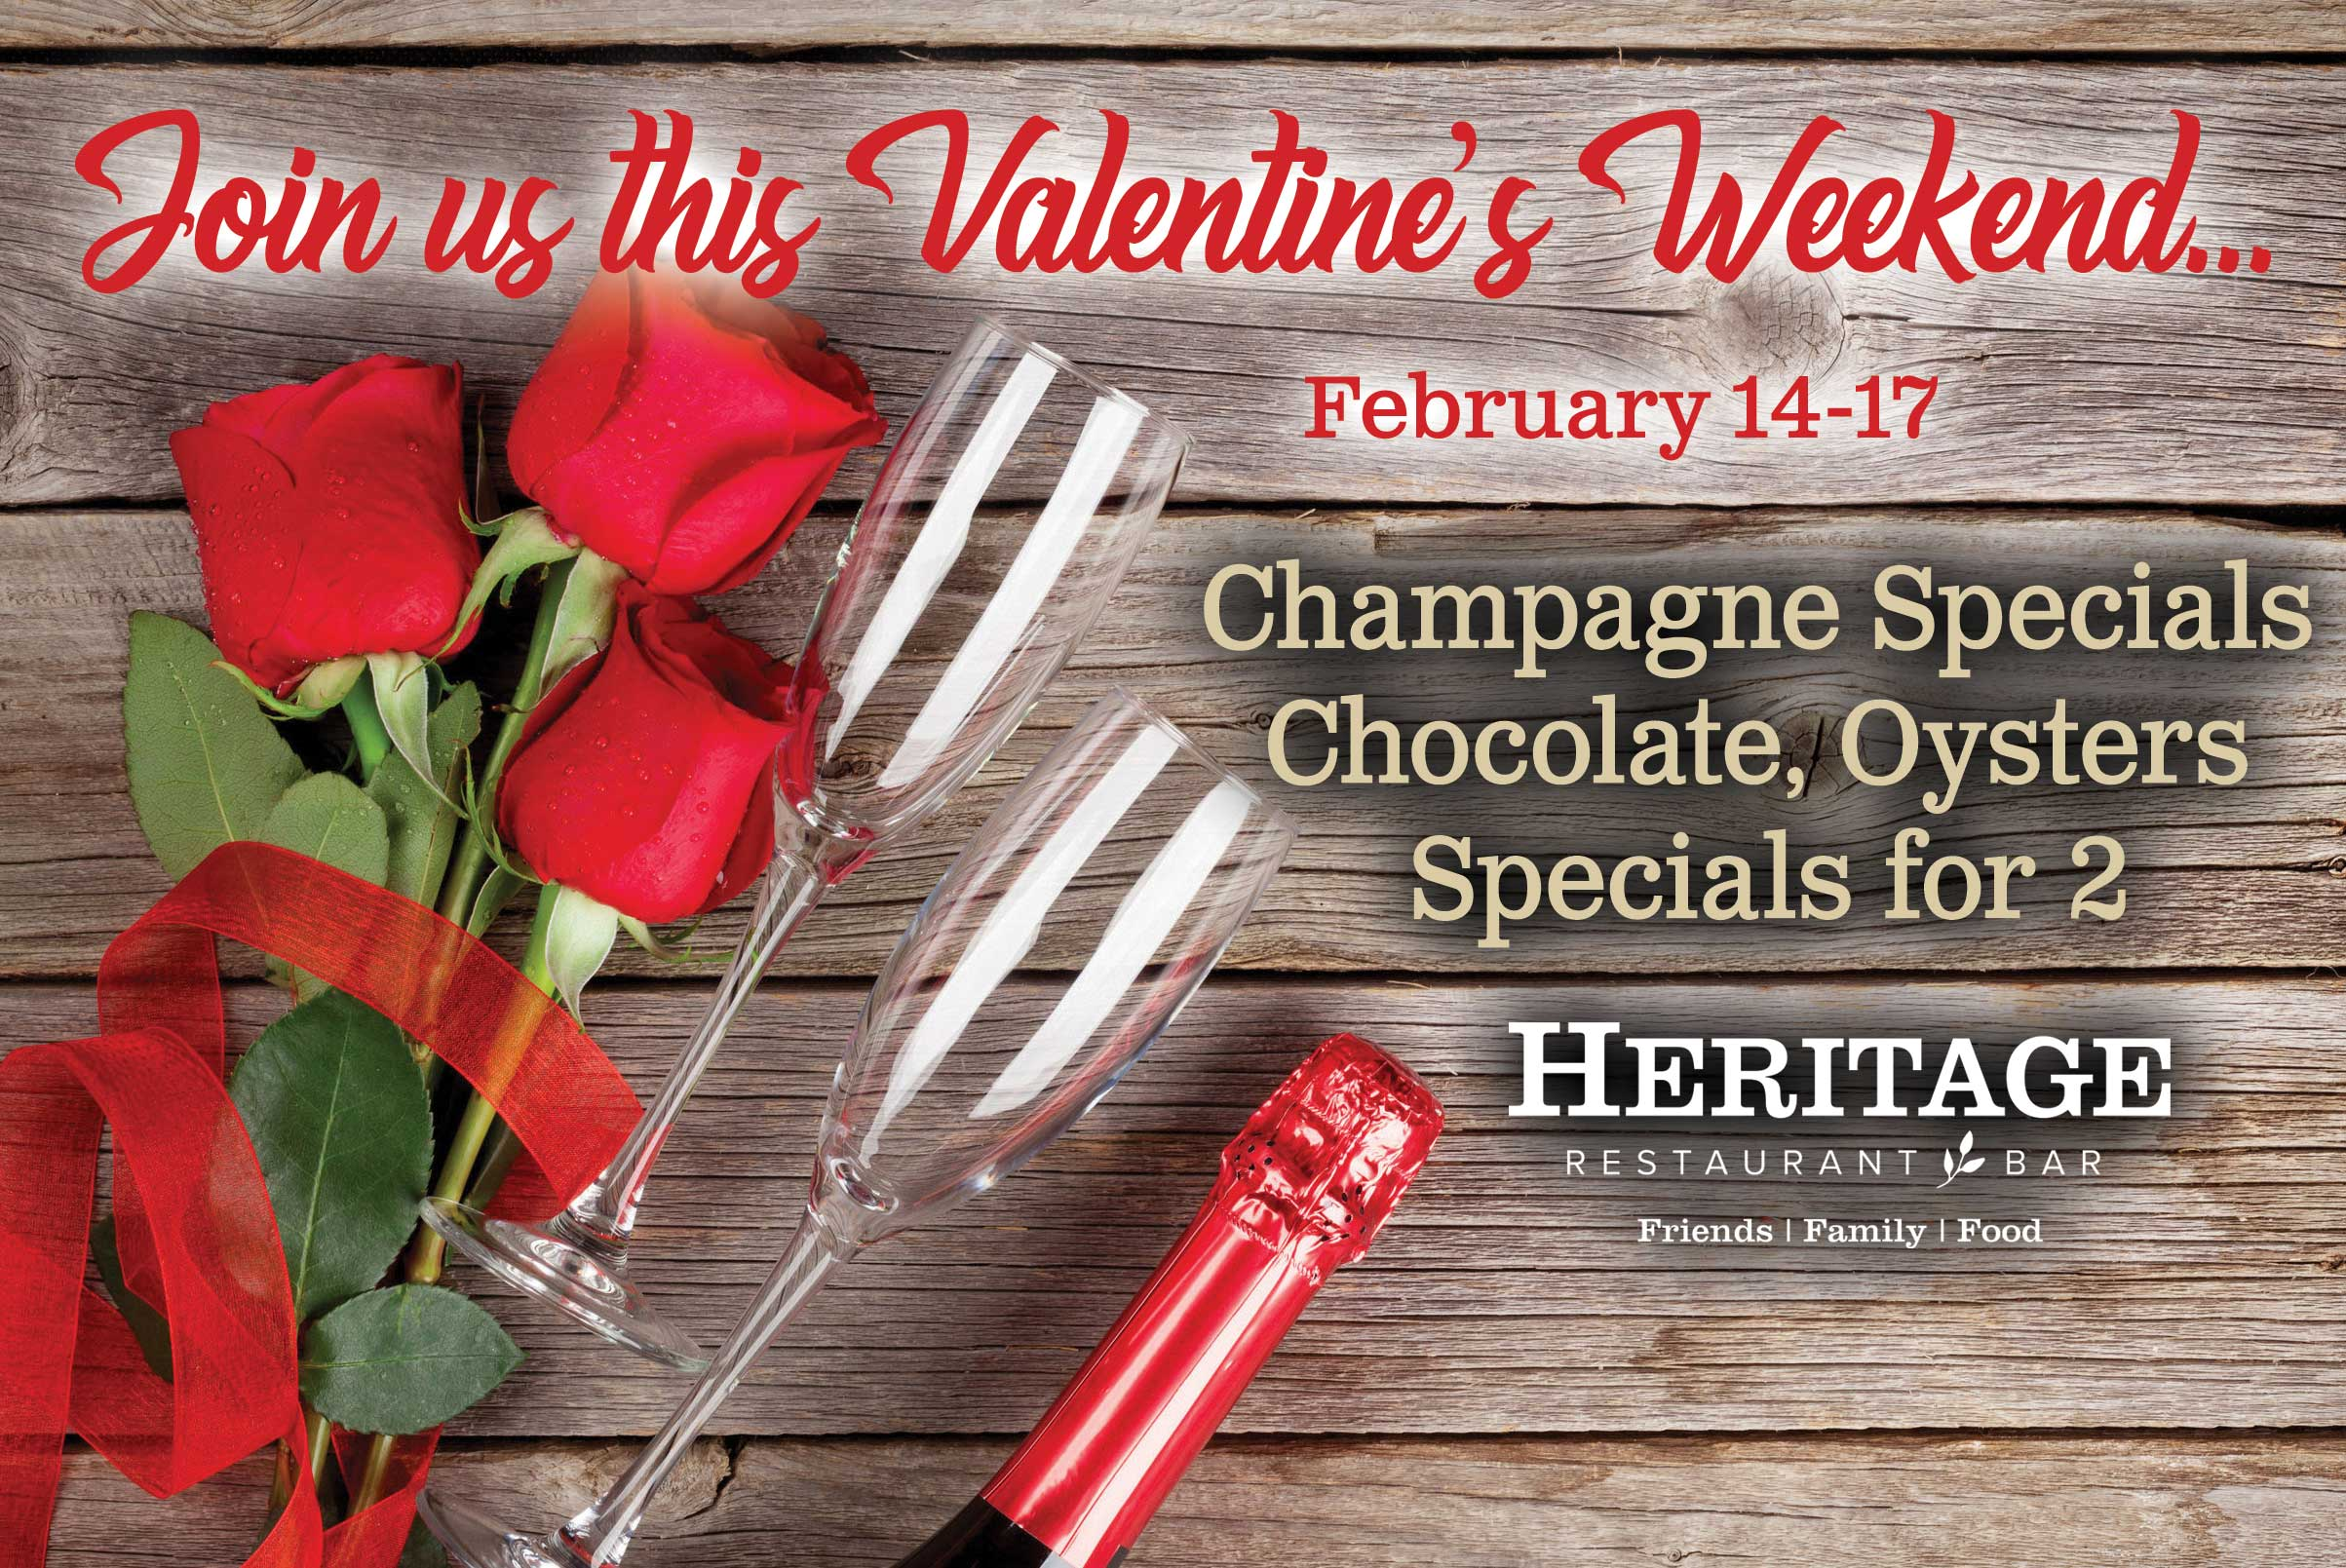 Valentine's Weekend at Heritage